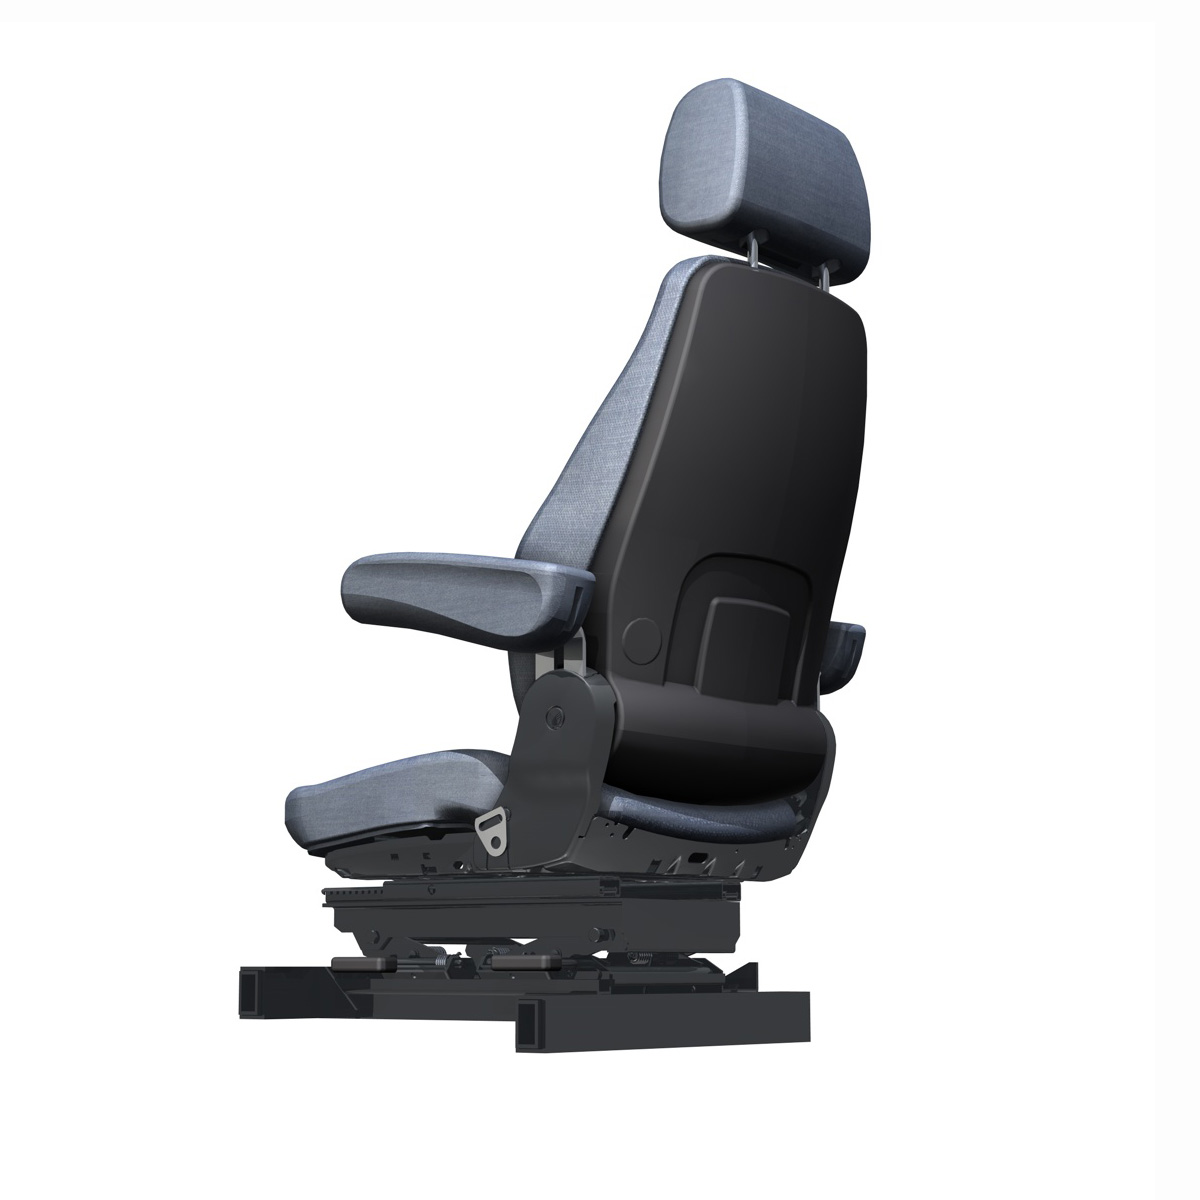 car seat with attachment 3d model 3ds fbx c4d lwo obj 187233